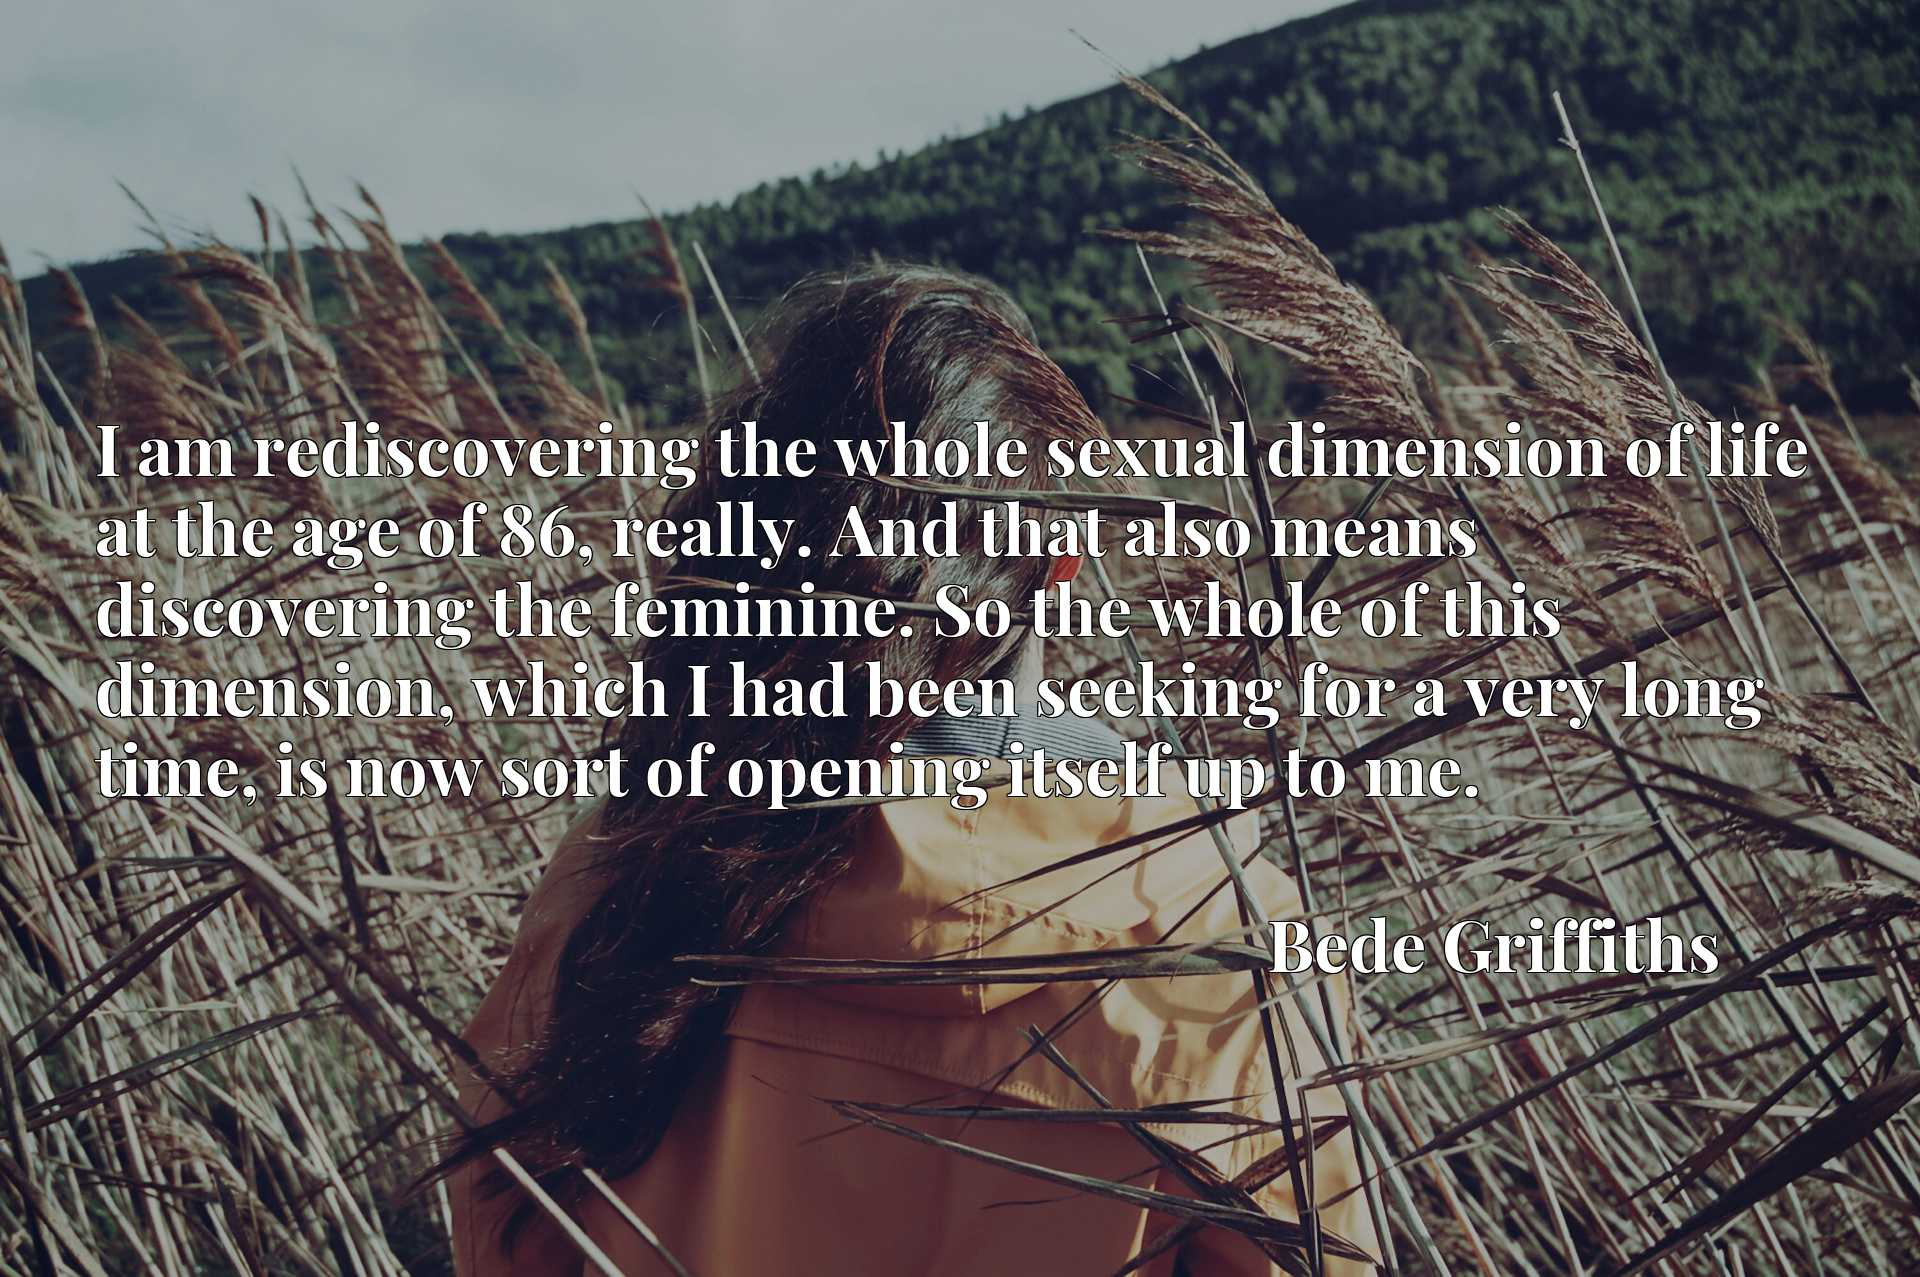 I am rediscovering the whole sexual dimension of life at the age of 86, really. And that also means discovering the feminine. So the whole of this dimension, which I had been seeking for a very long time, is now sort of opening itself up to me.